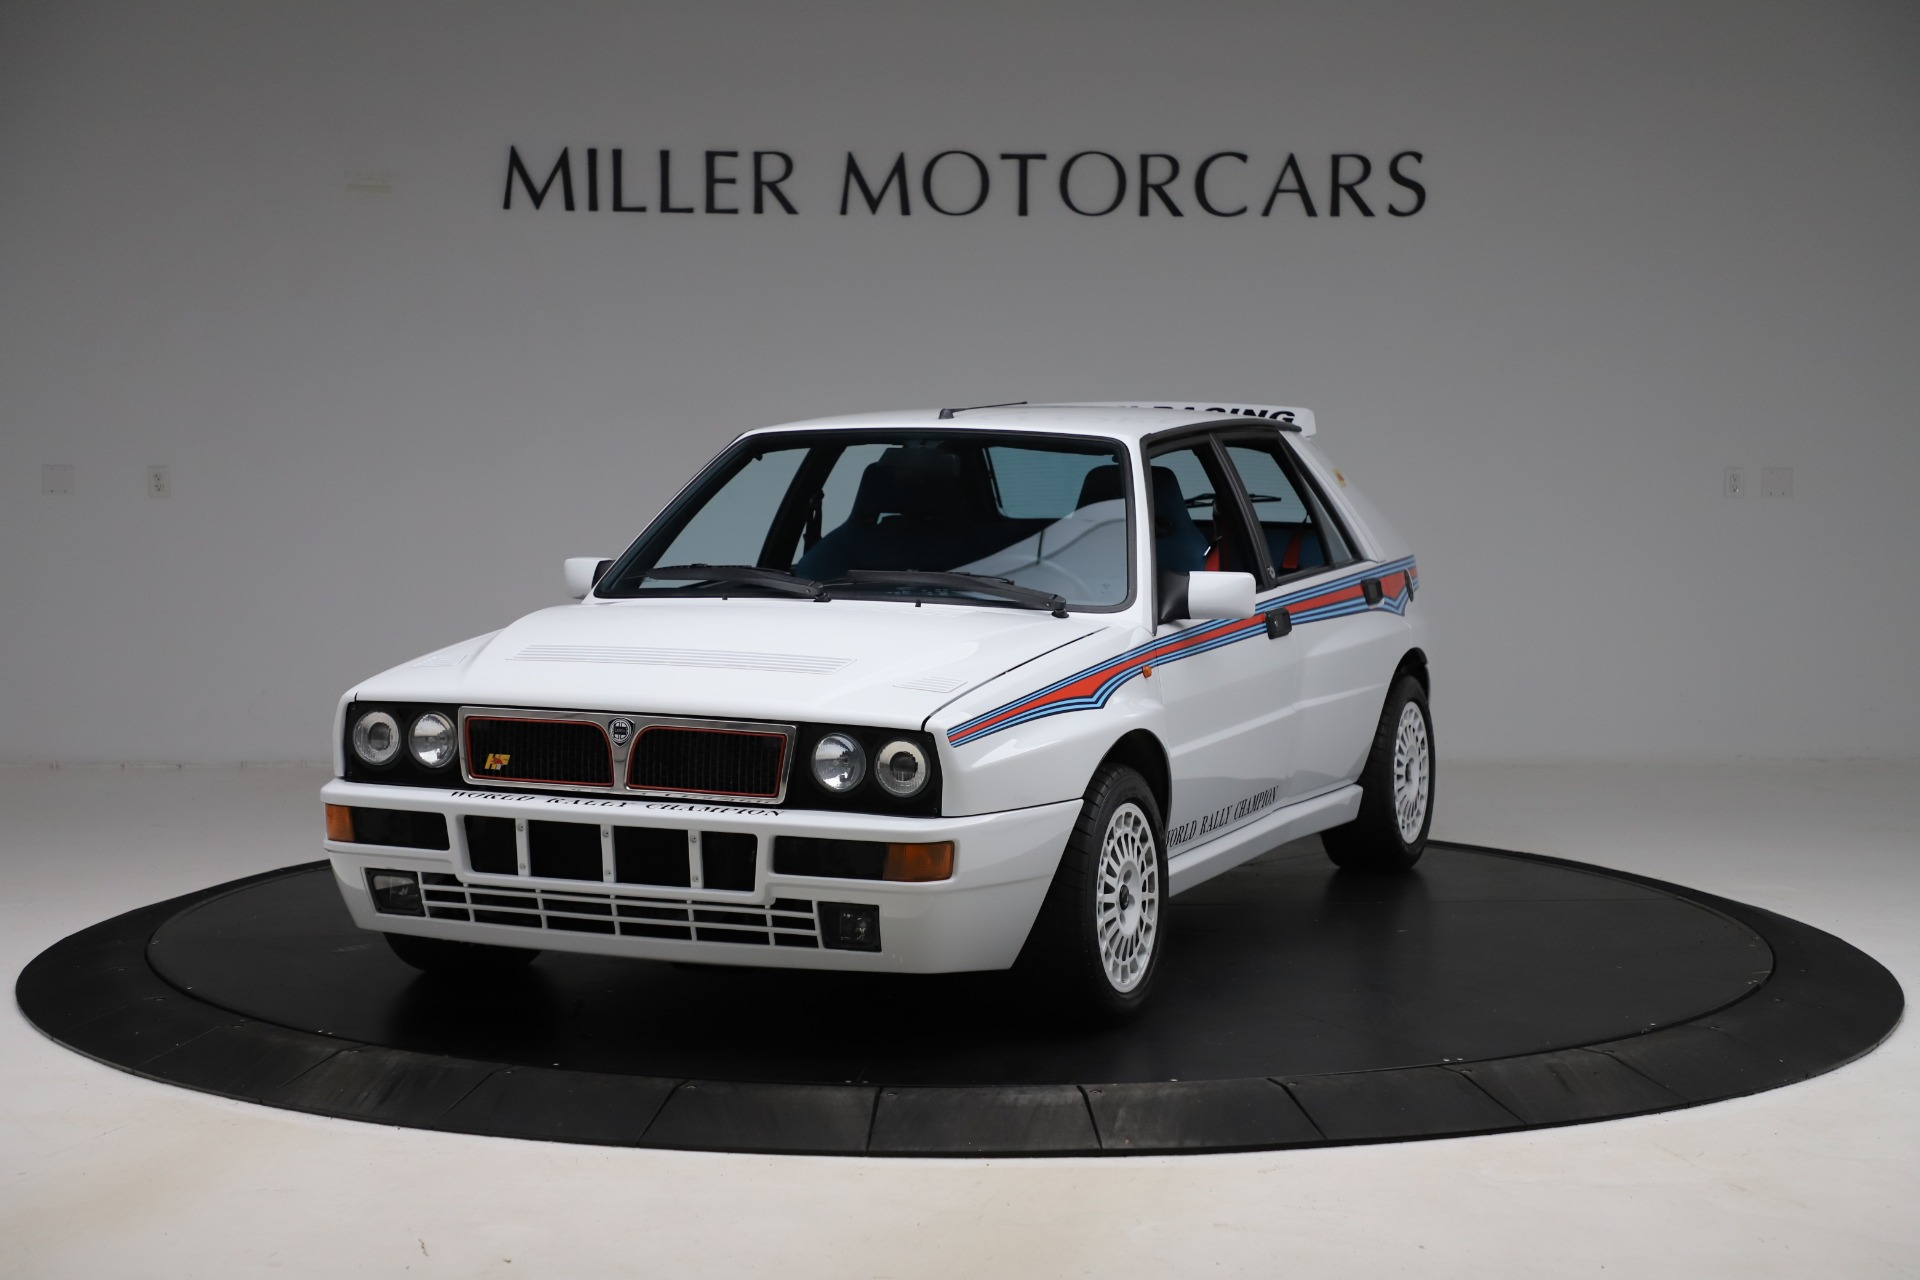 Used 1992 Lancia Delta Integrale Evo 1 - Martini 6 for sale $188,900 at Maserati of Westport in Westport CT 06880 1